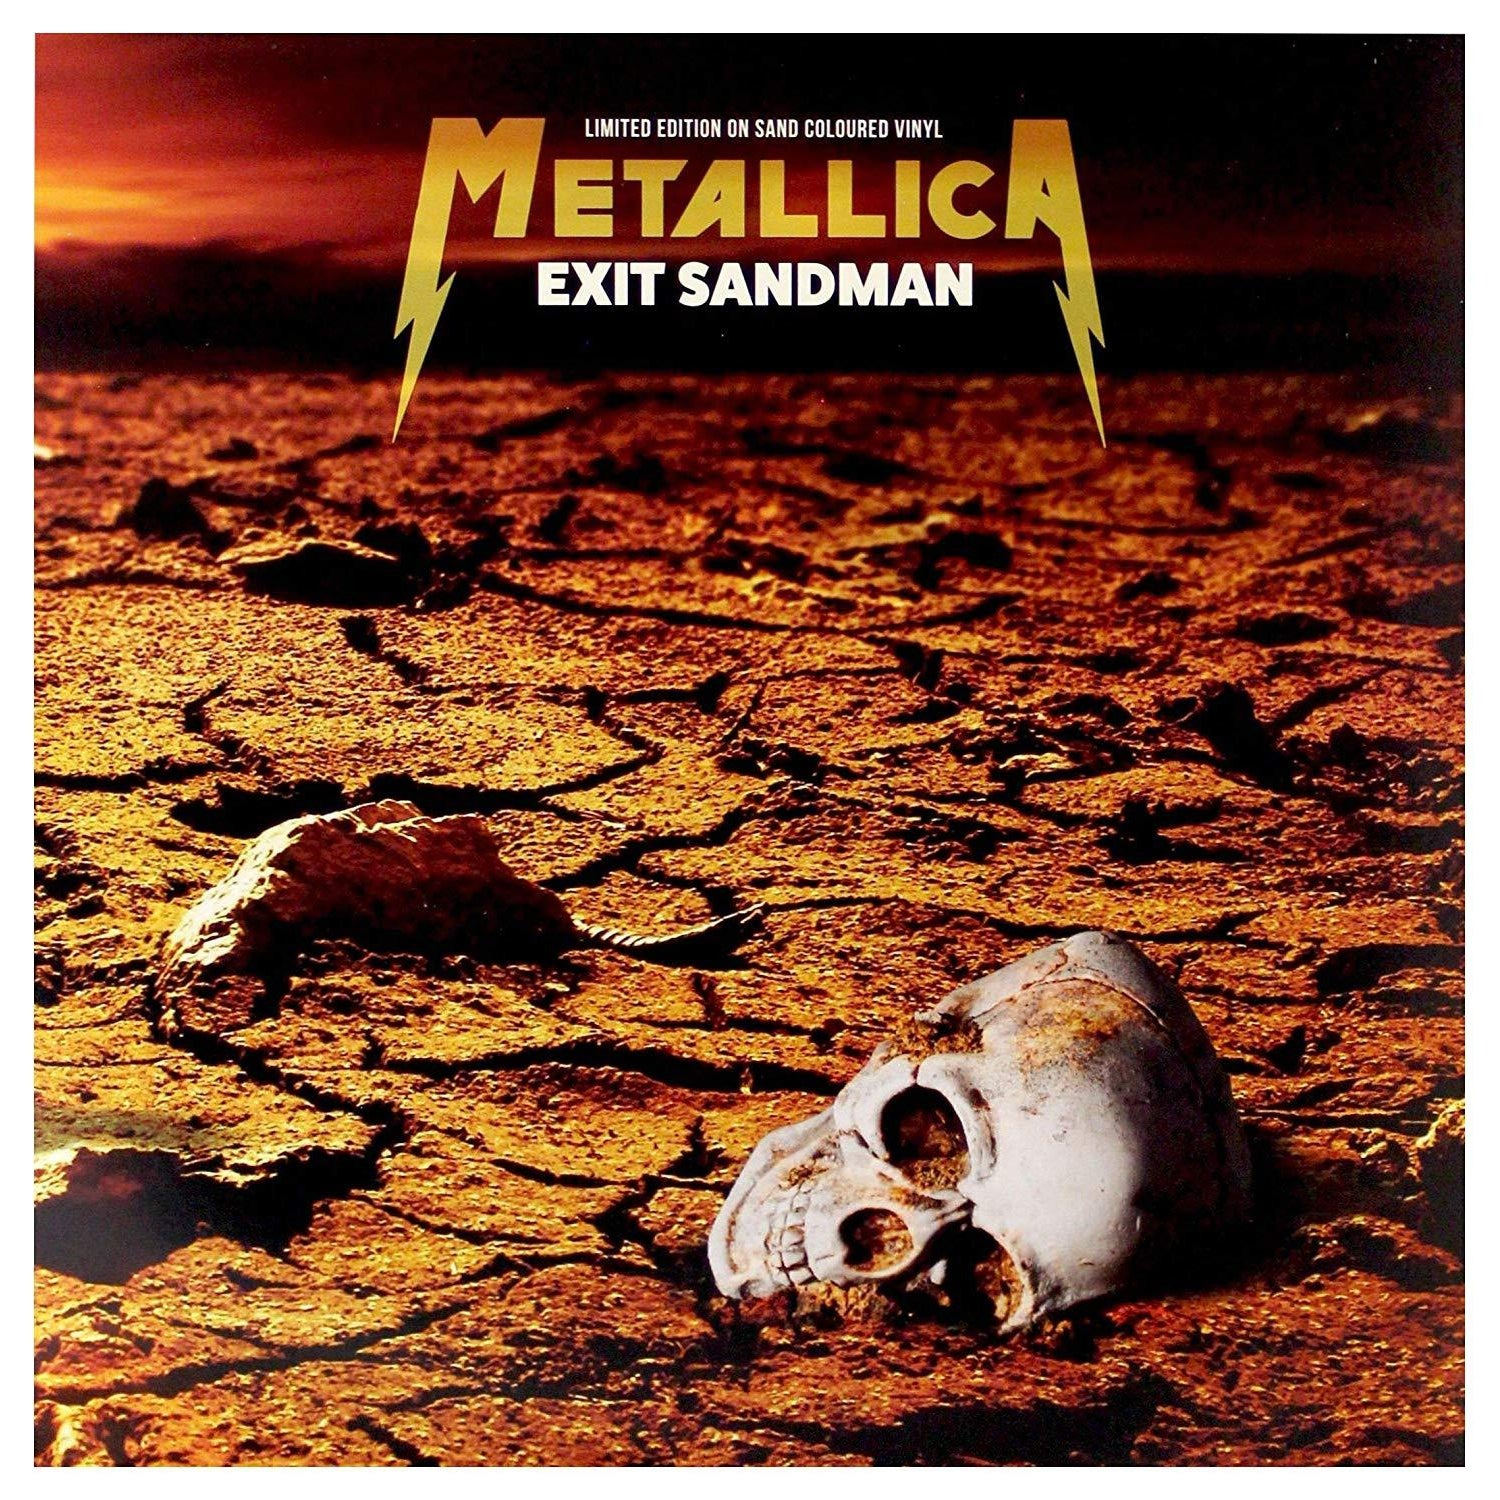 METALLICA - EXIT SANDMAN: LIMITED EDITION ON SAND (COLOURED VINYL) [Vinyl]